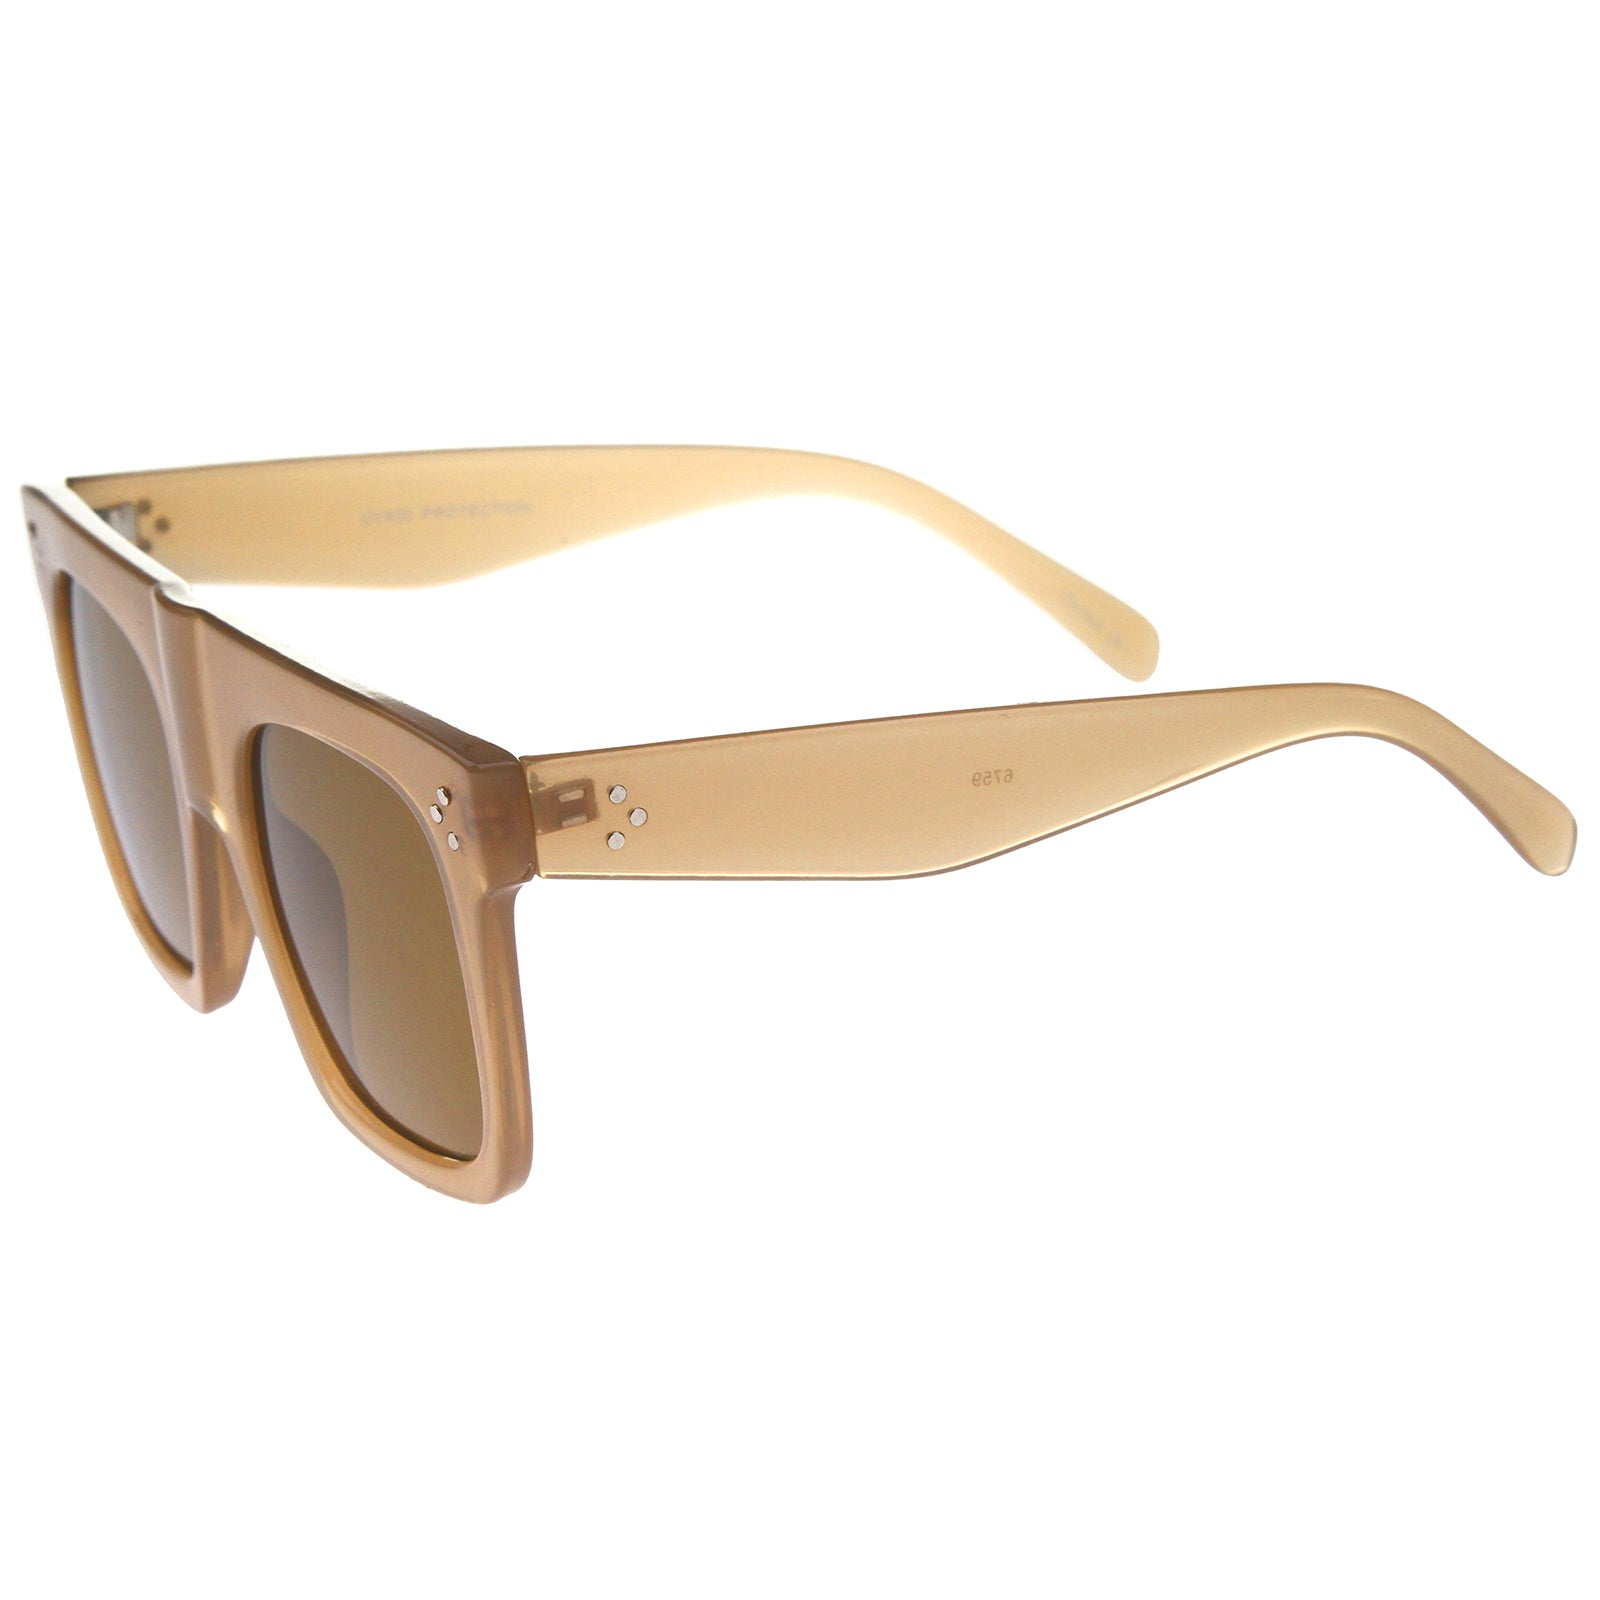 Modern Fashion Bold Flat Top Square Horn Rimmed Sunglasses 50mm - sunglass.la - 15